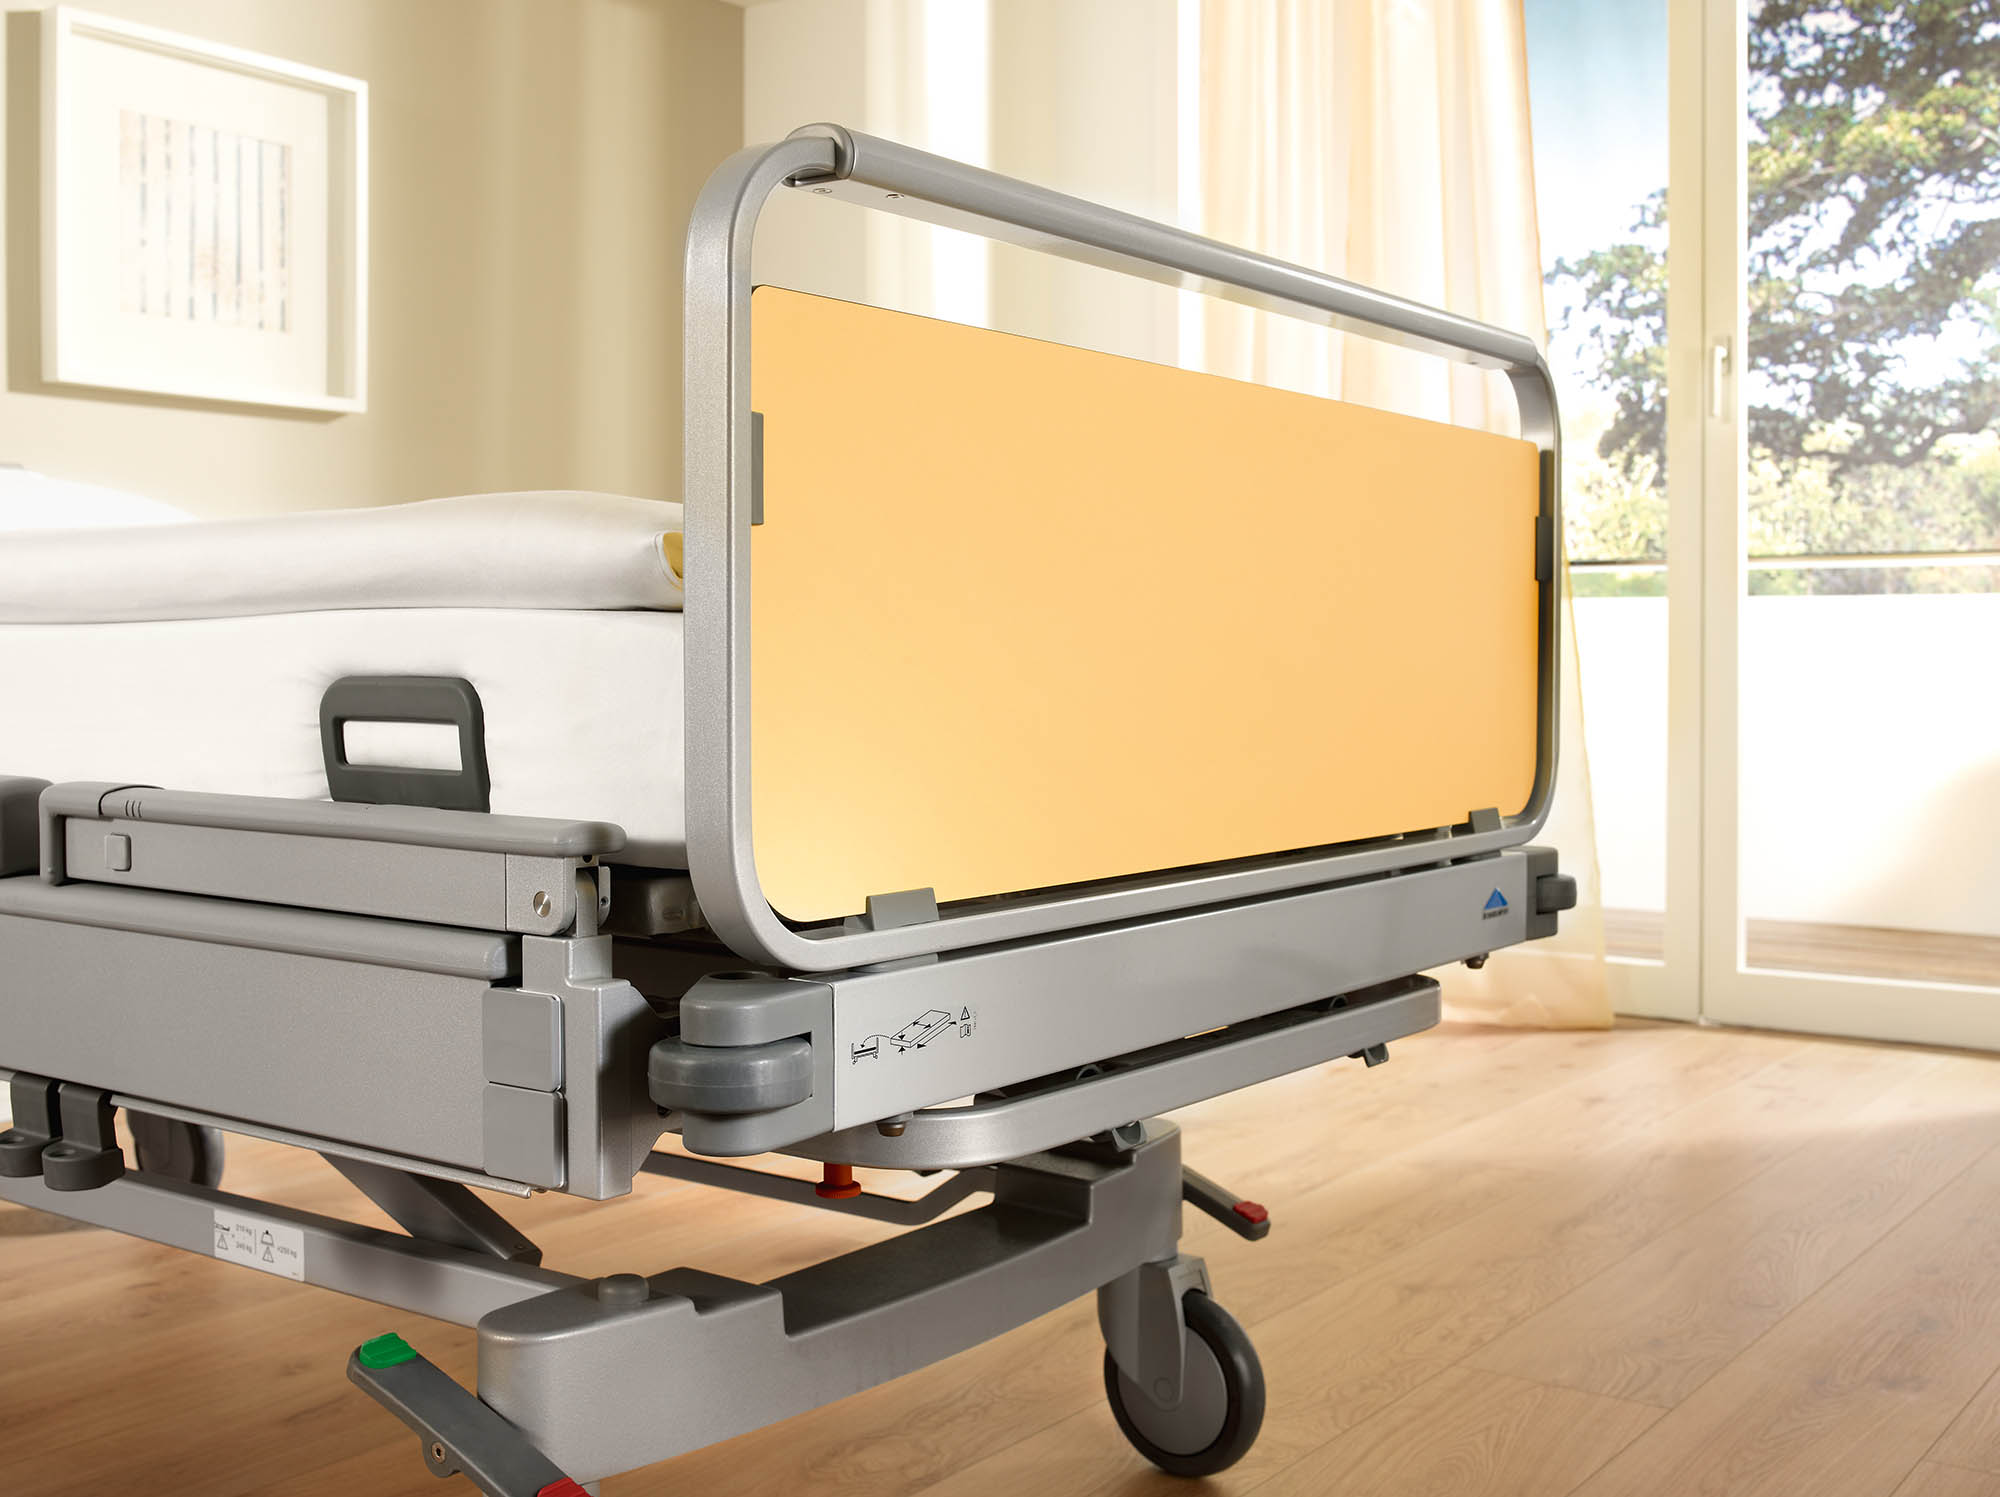 Classic head and footboard of the Vida hospital bed